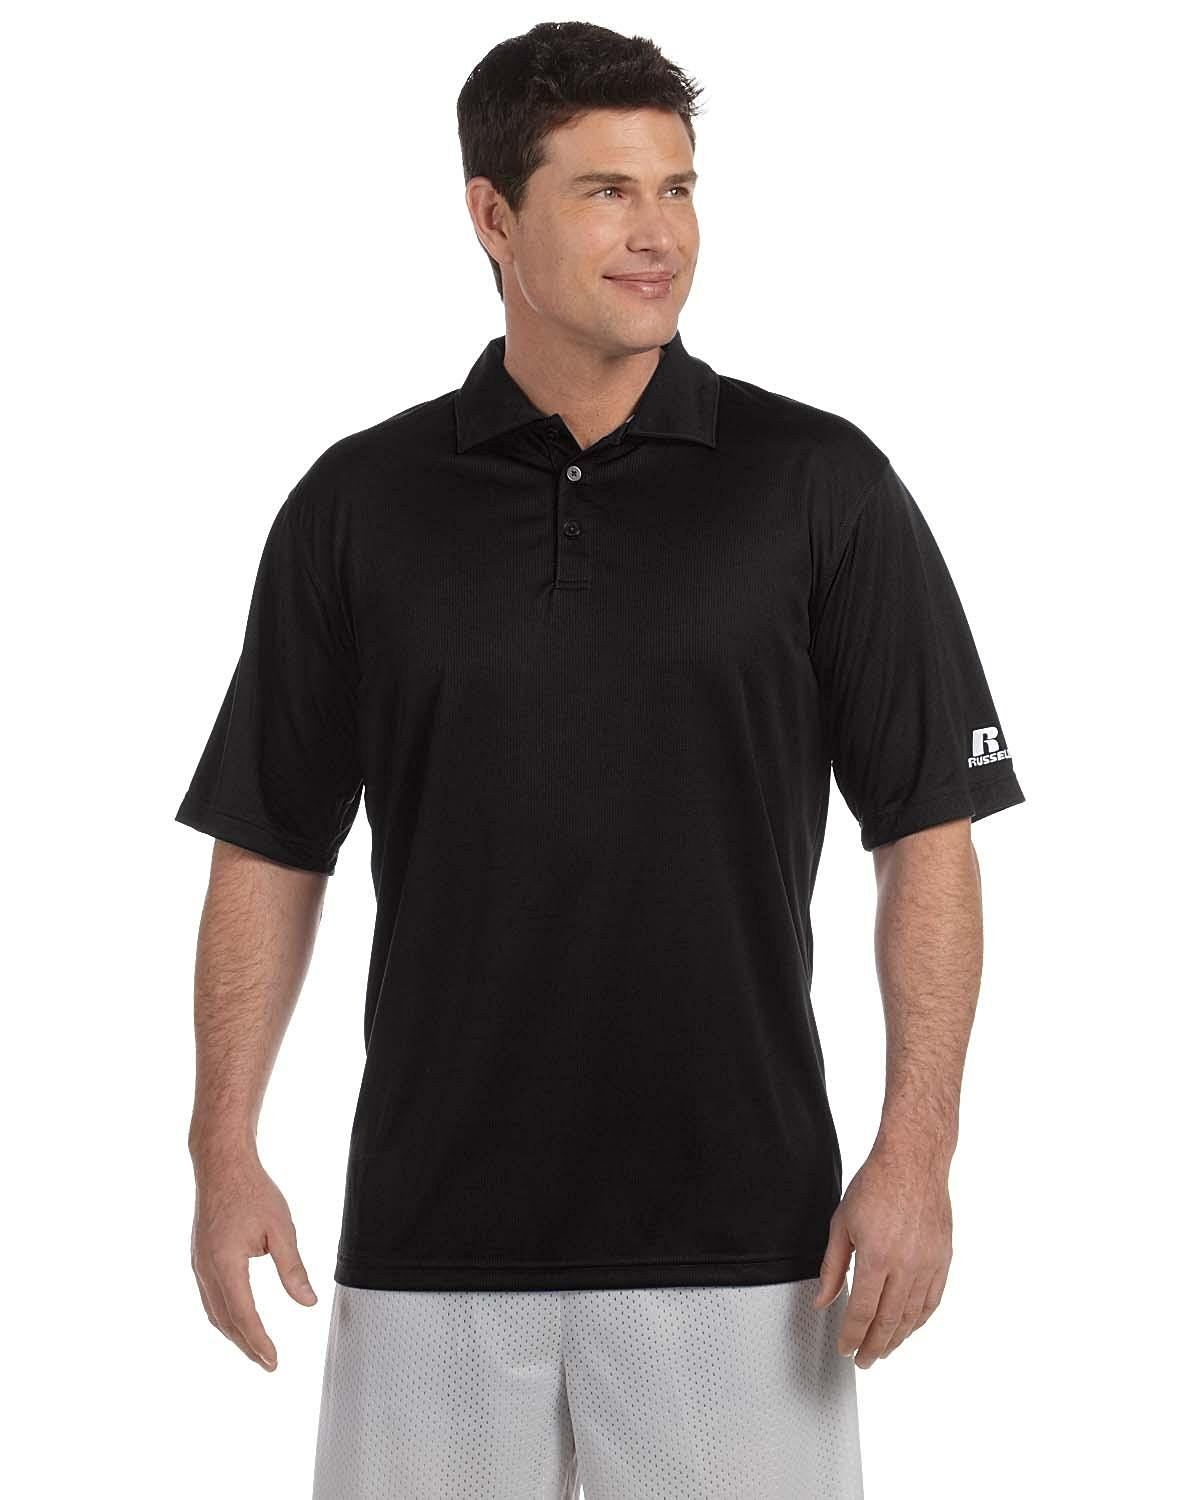 Russell Athletic Team Essential Polo, M, Black